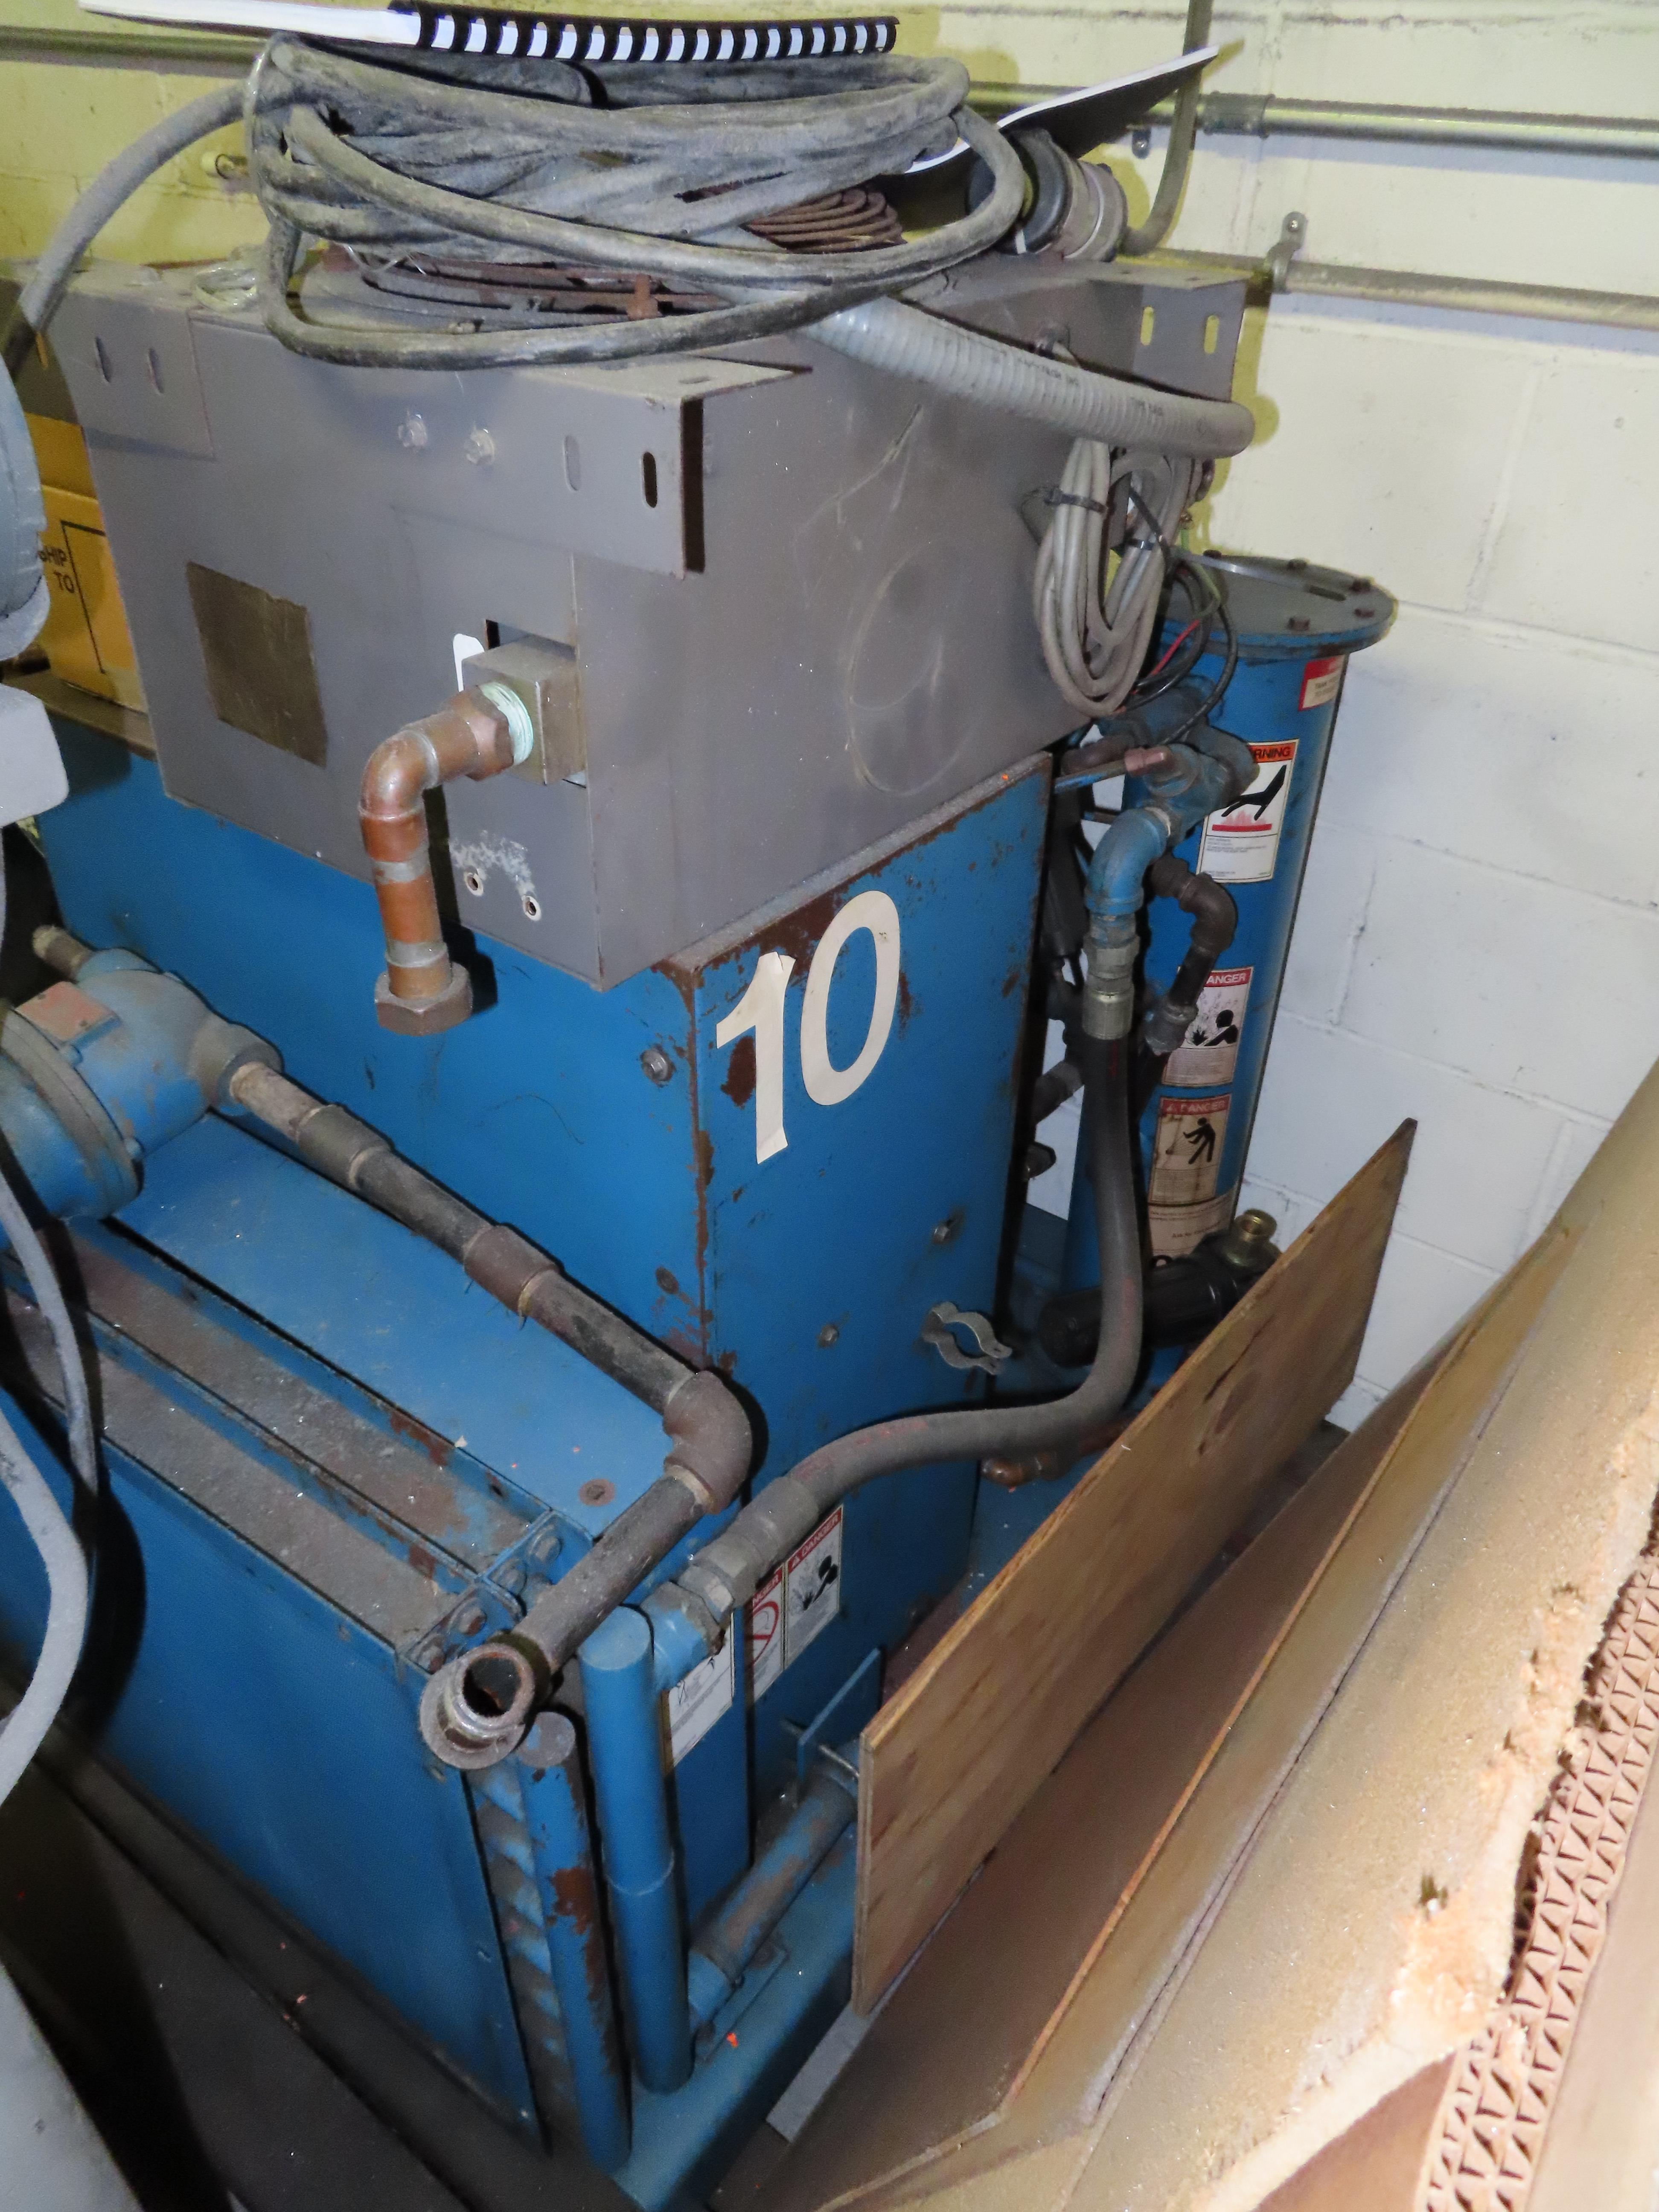 QUINCY MDL. QXB 10HP SCREW TYPE AIR COMPRESSOR, S/N: QXBCANA12C (AS IS) - Image 2 of 2